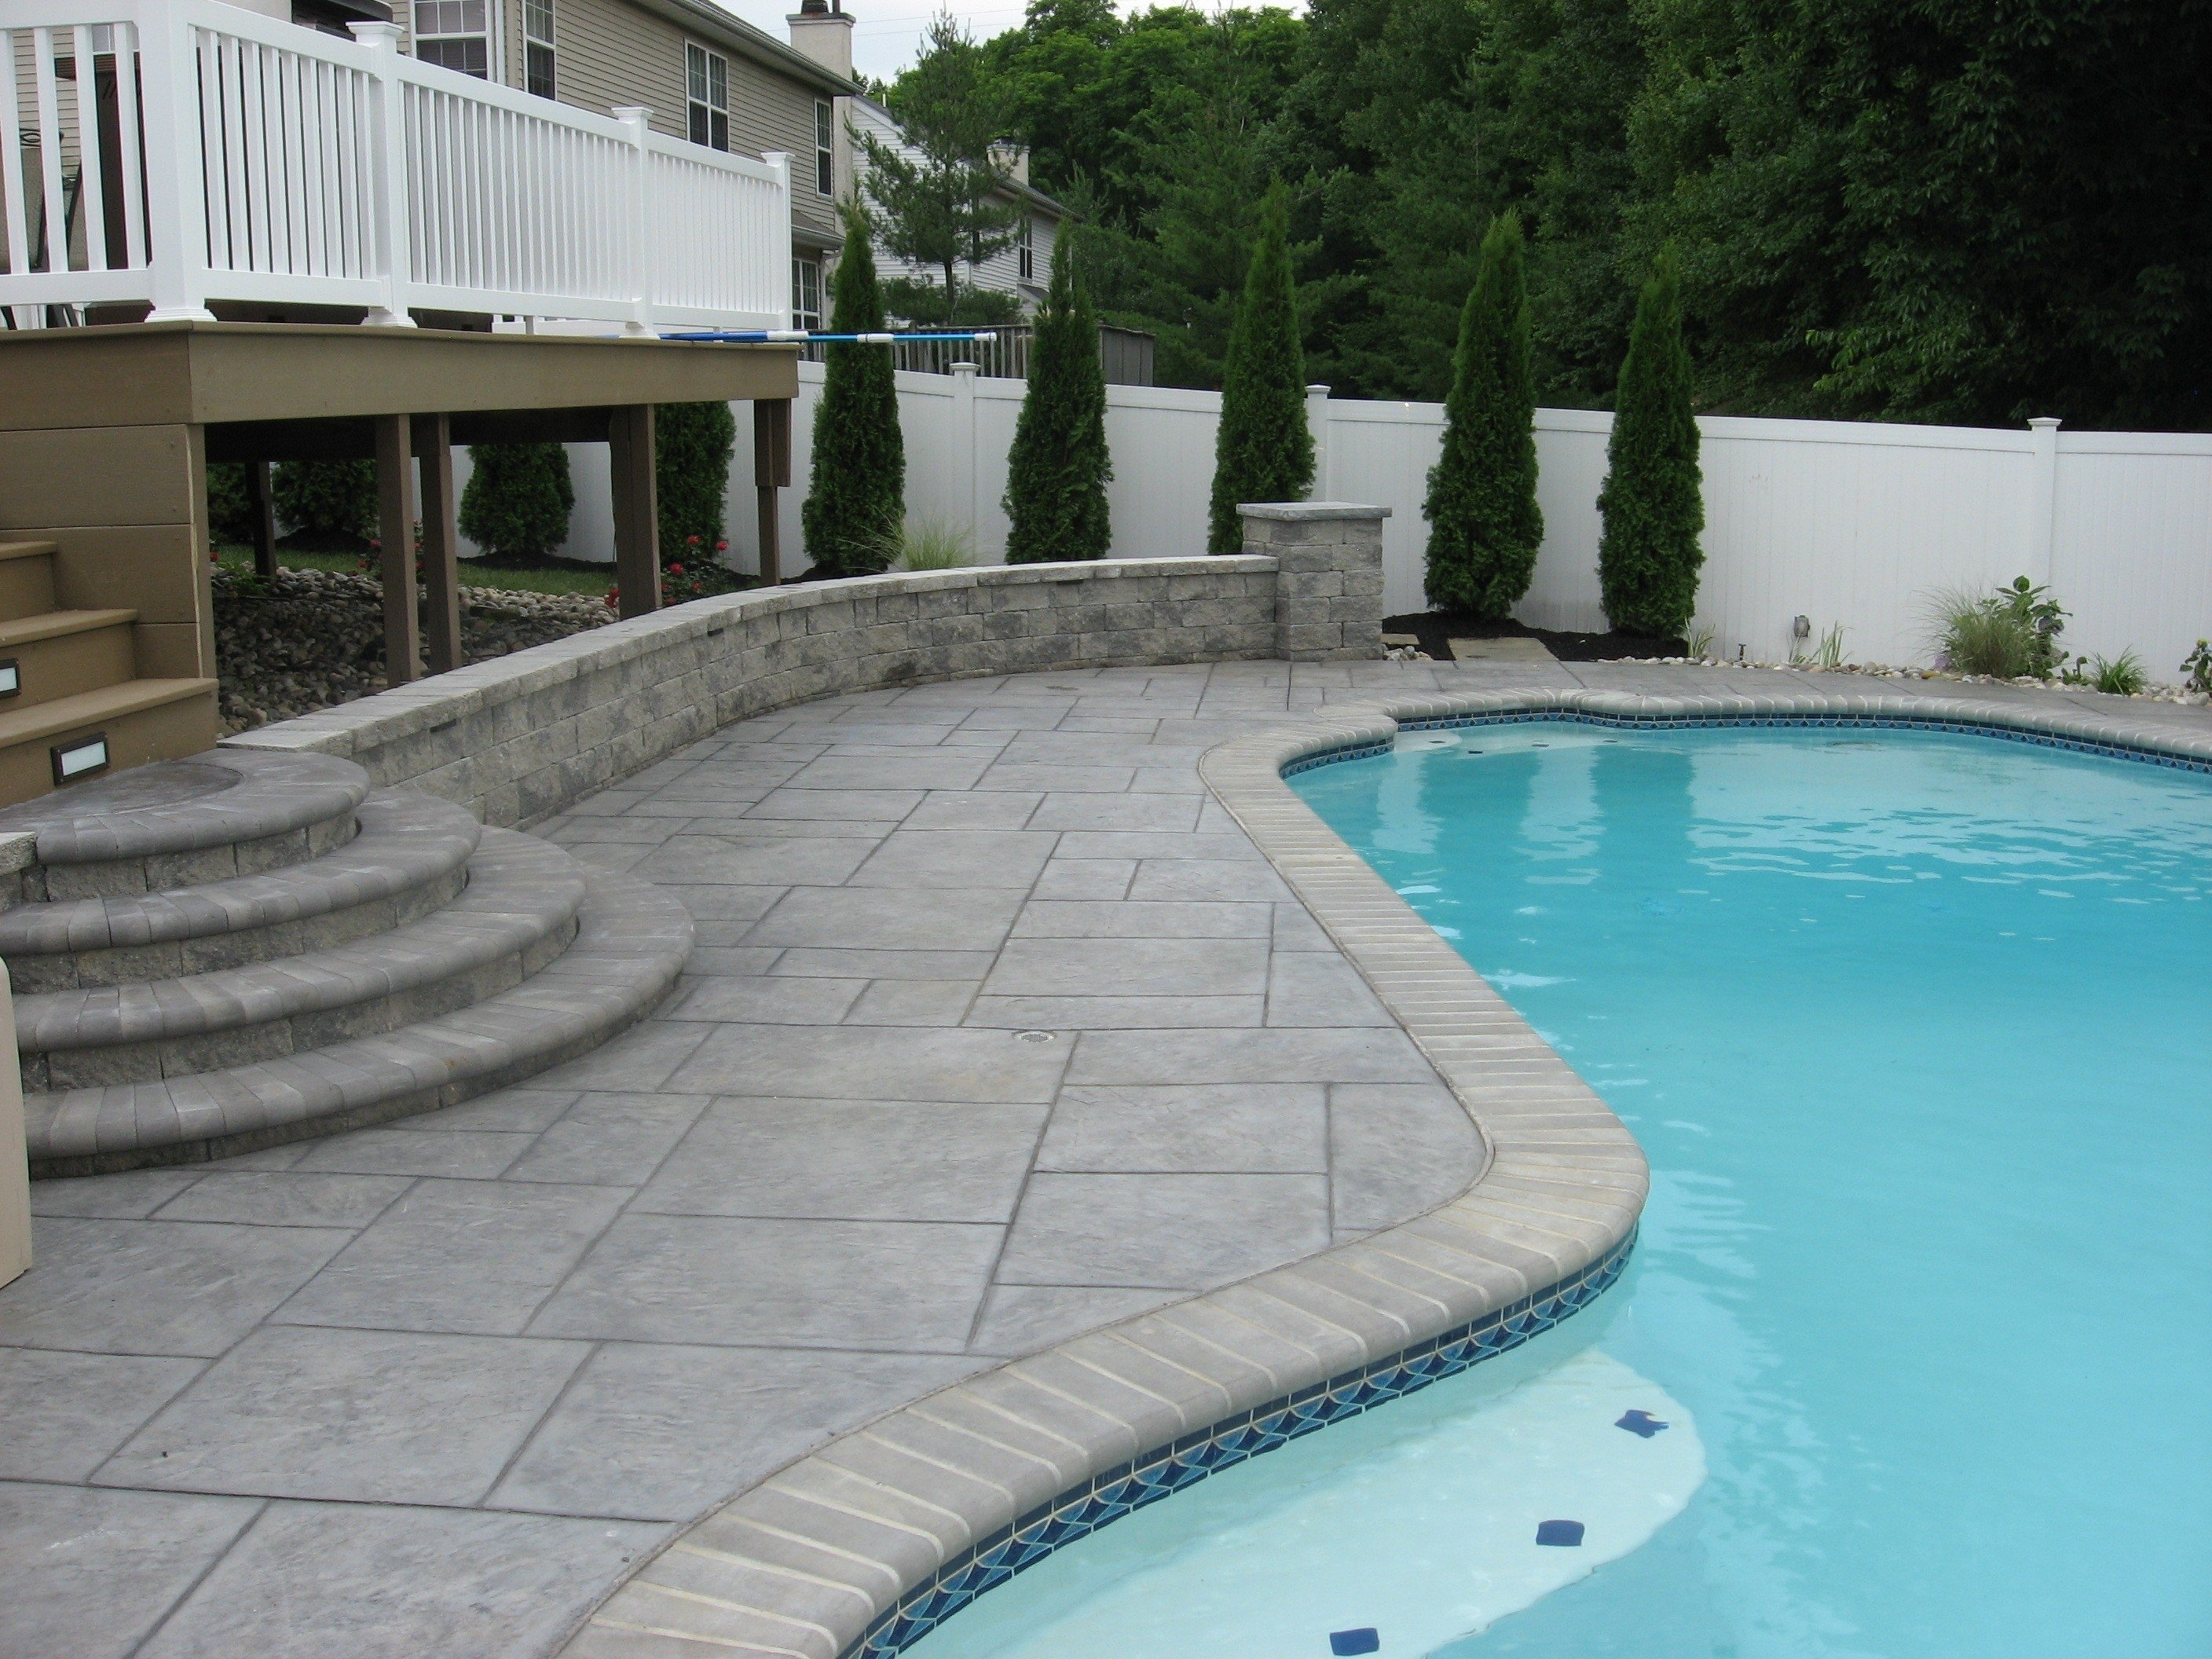 10 Elegant Pool Deck Ideas For Inground Pools exterior awesome pool deck design ideas above ground engaging fit 2021